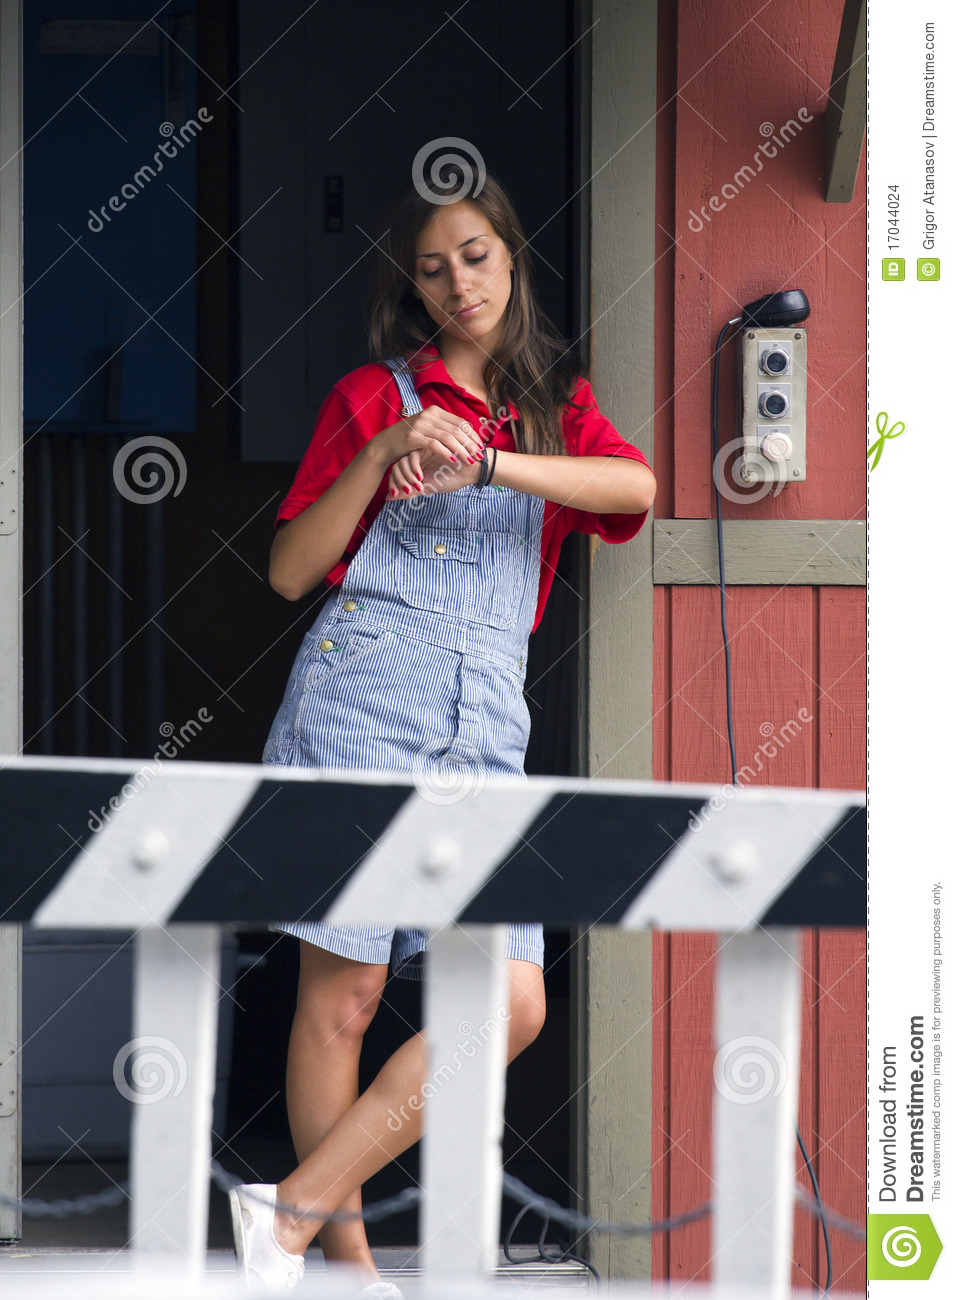 Woman and railroad crossing